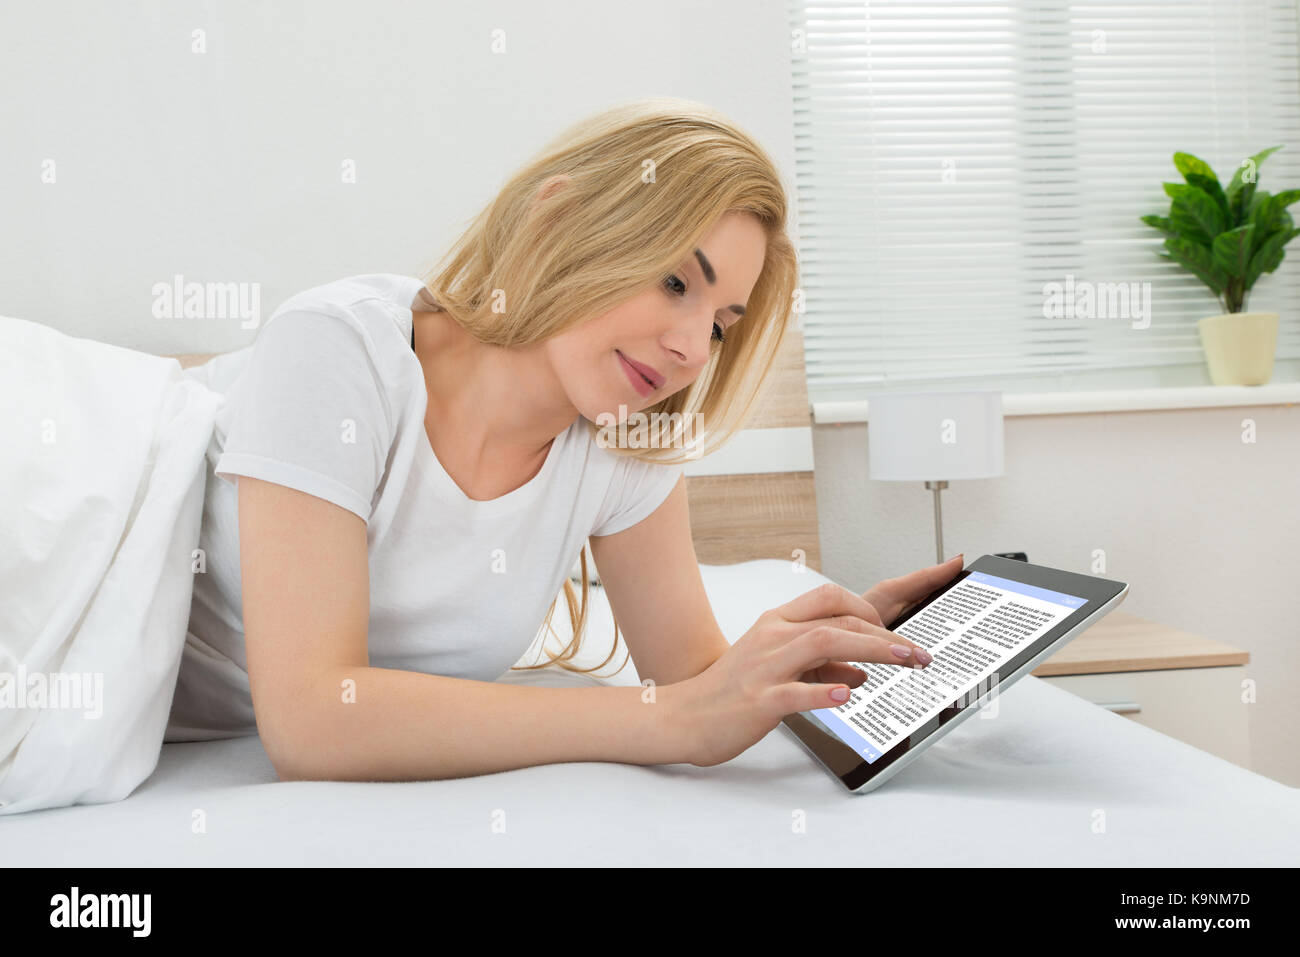 Young Woman Reading Ebook On Digital Tablet In Bedroom - Stock Image